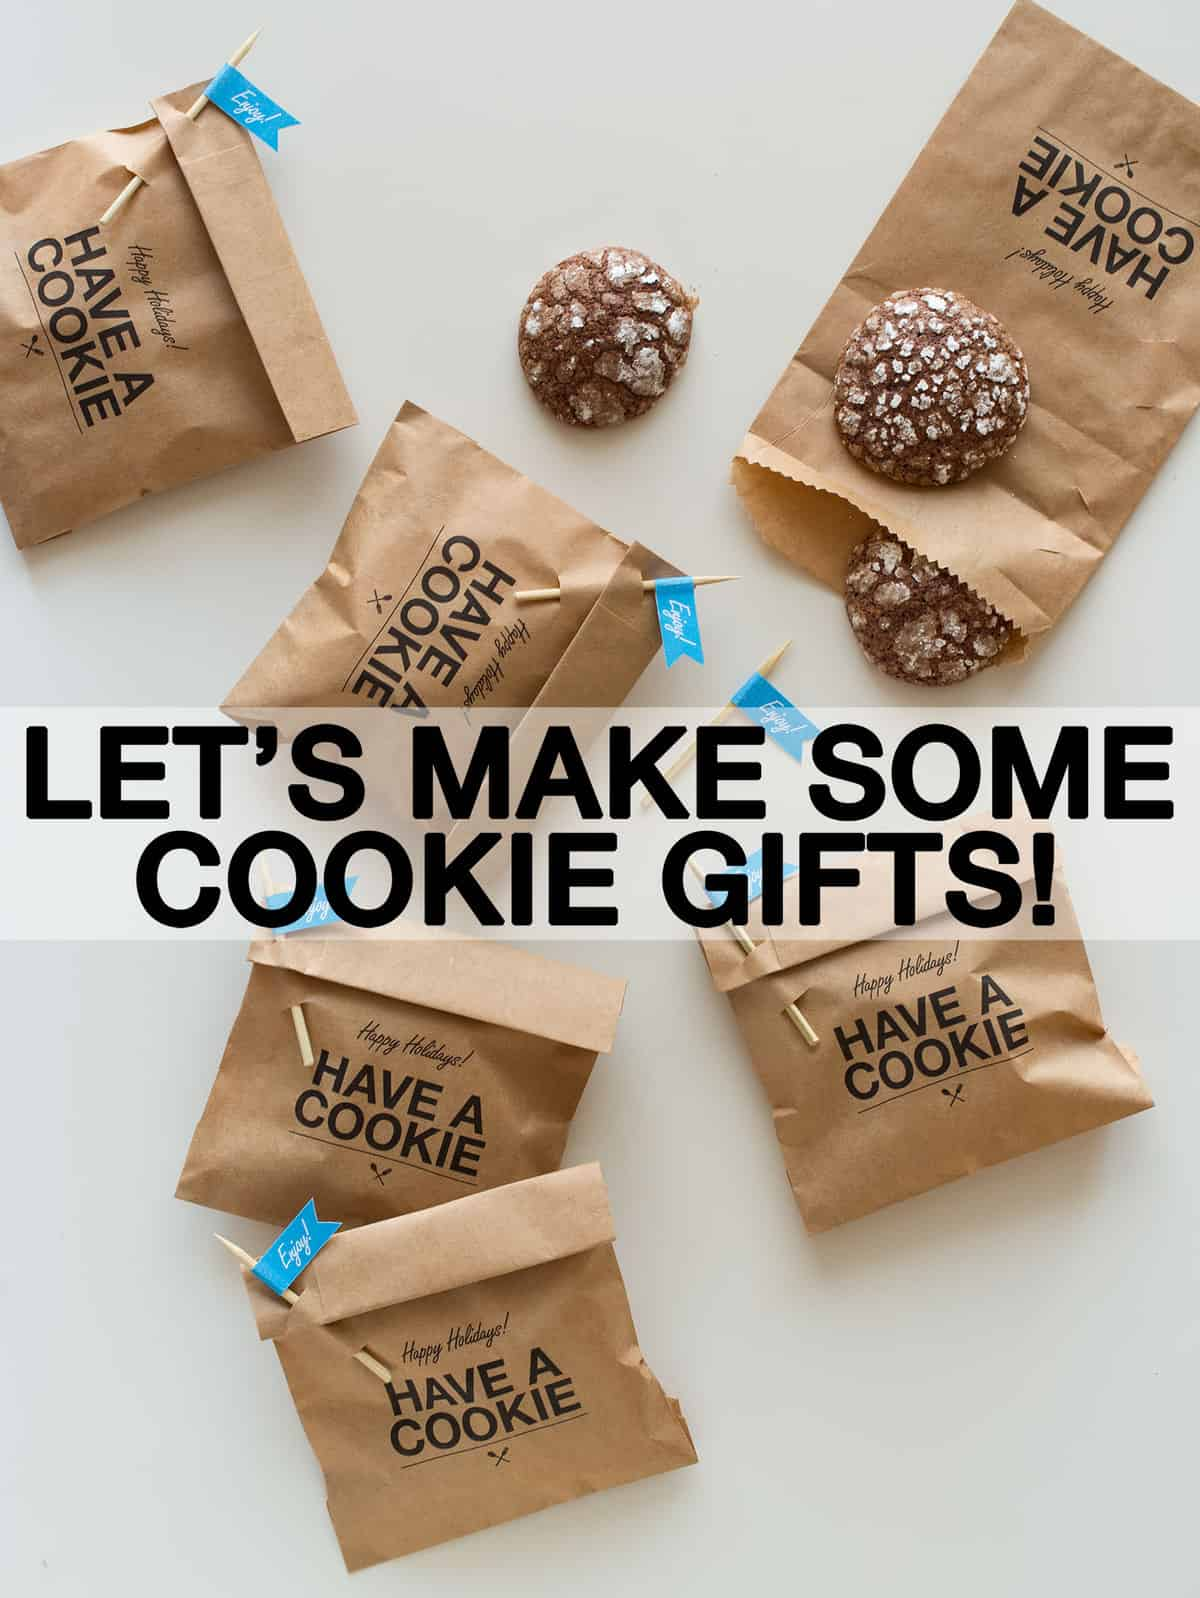 Food Packaging & Display We stock and sell all the food packaging and display Email Sign Up & Save 15%· Creative Baking Ideas· % Guarantee· RecipesBrands: AmeriColor, Ateco, Ball, Catskill Craftsmen, Chicago Metallic and more.